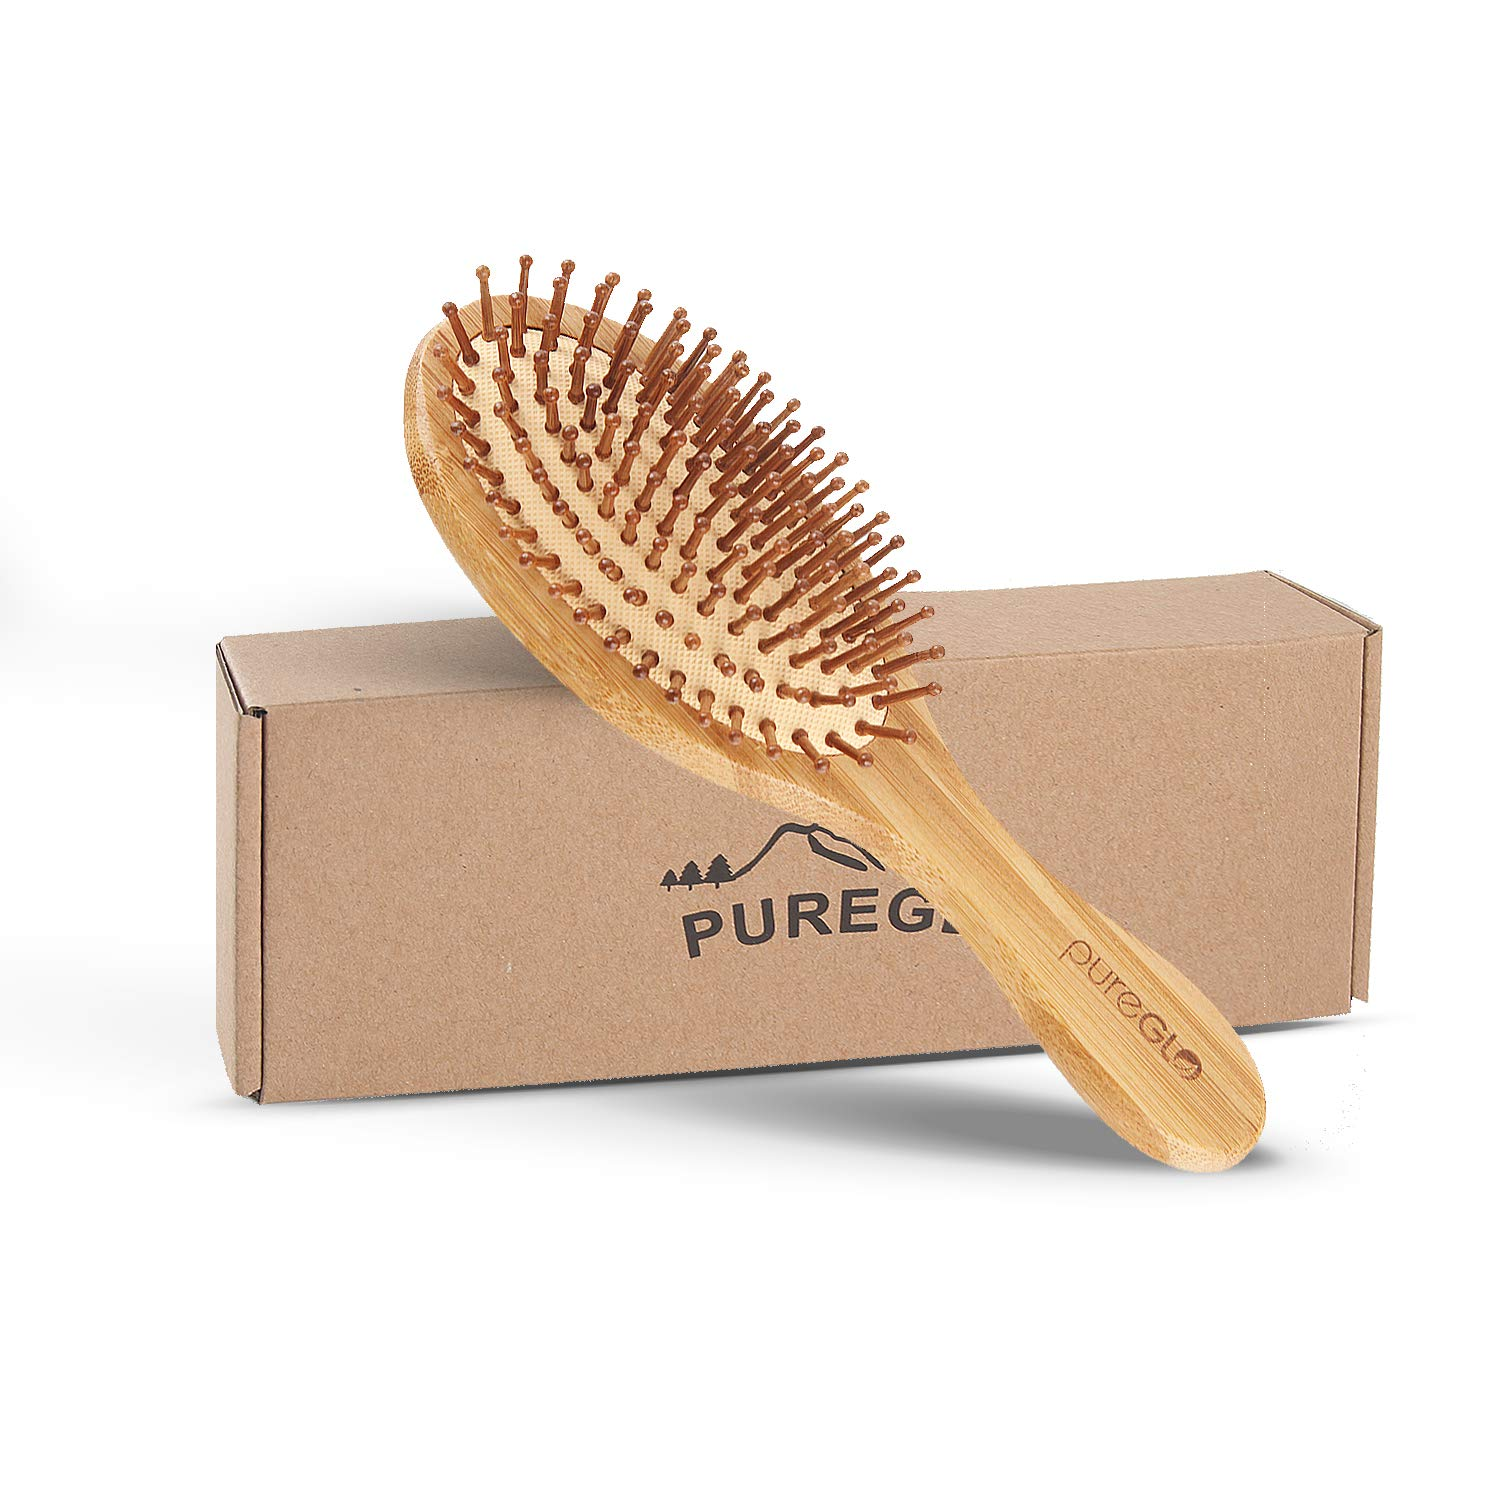 Natural Wooden Hair Brush – pureGLO Bamboo Bristle Detangling Hairbrush for Women Men and Kids - Reduce Frizz, Massage Scalp for Straight Curly Wavy Dry Wet Thick or Fine Hair